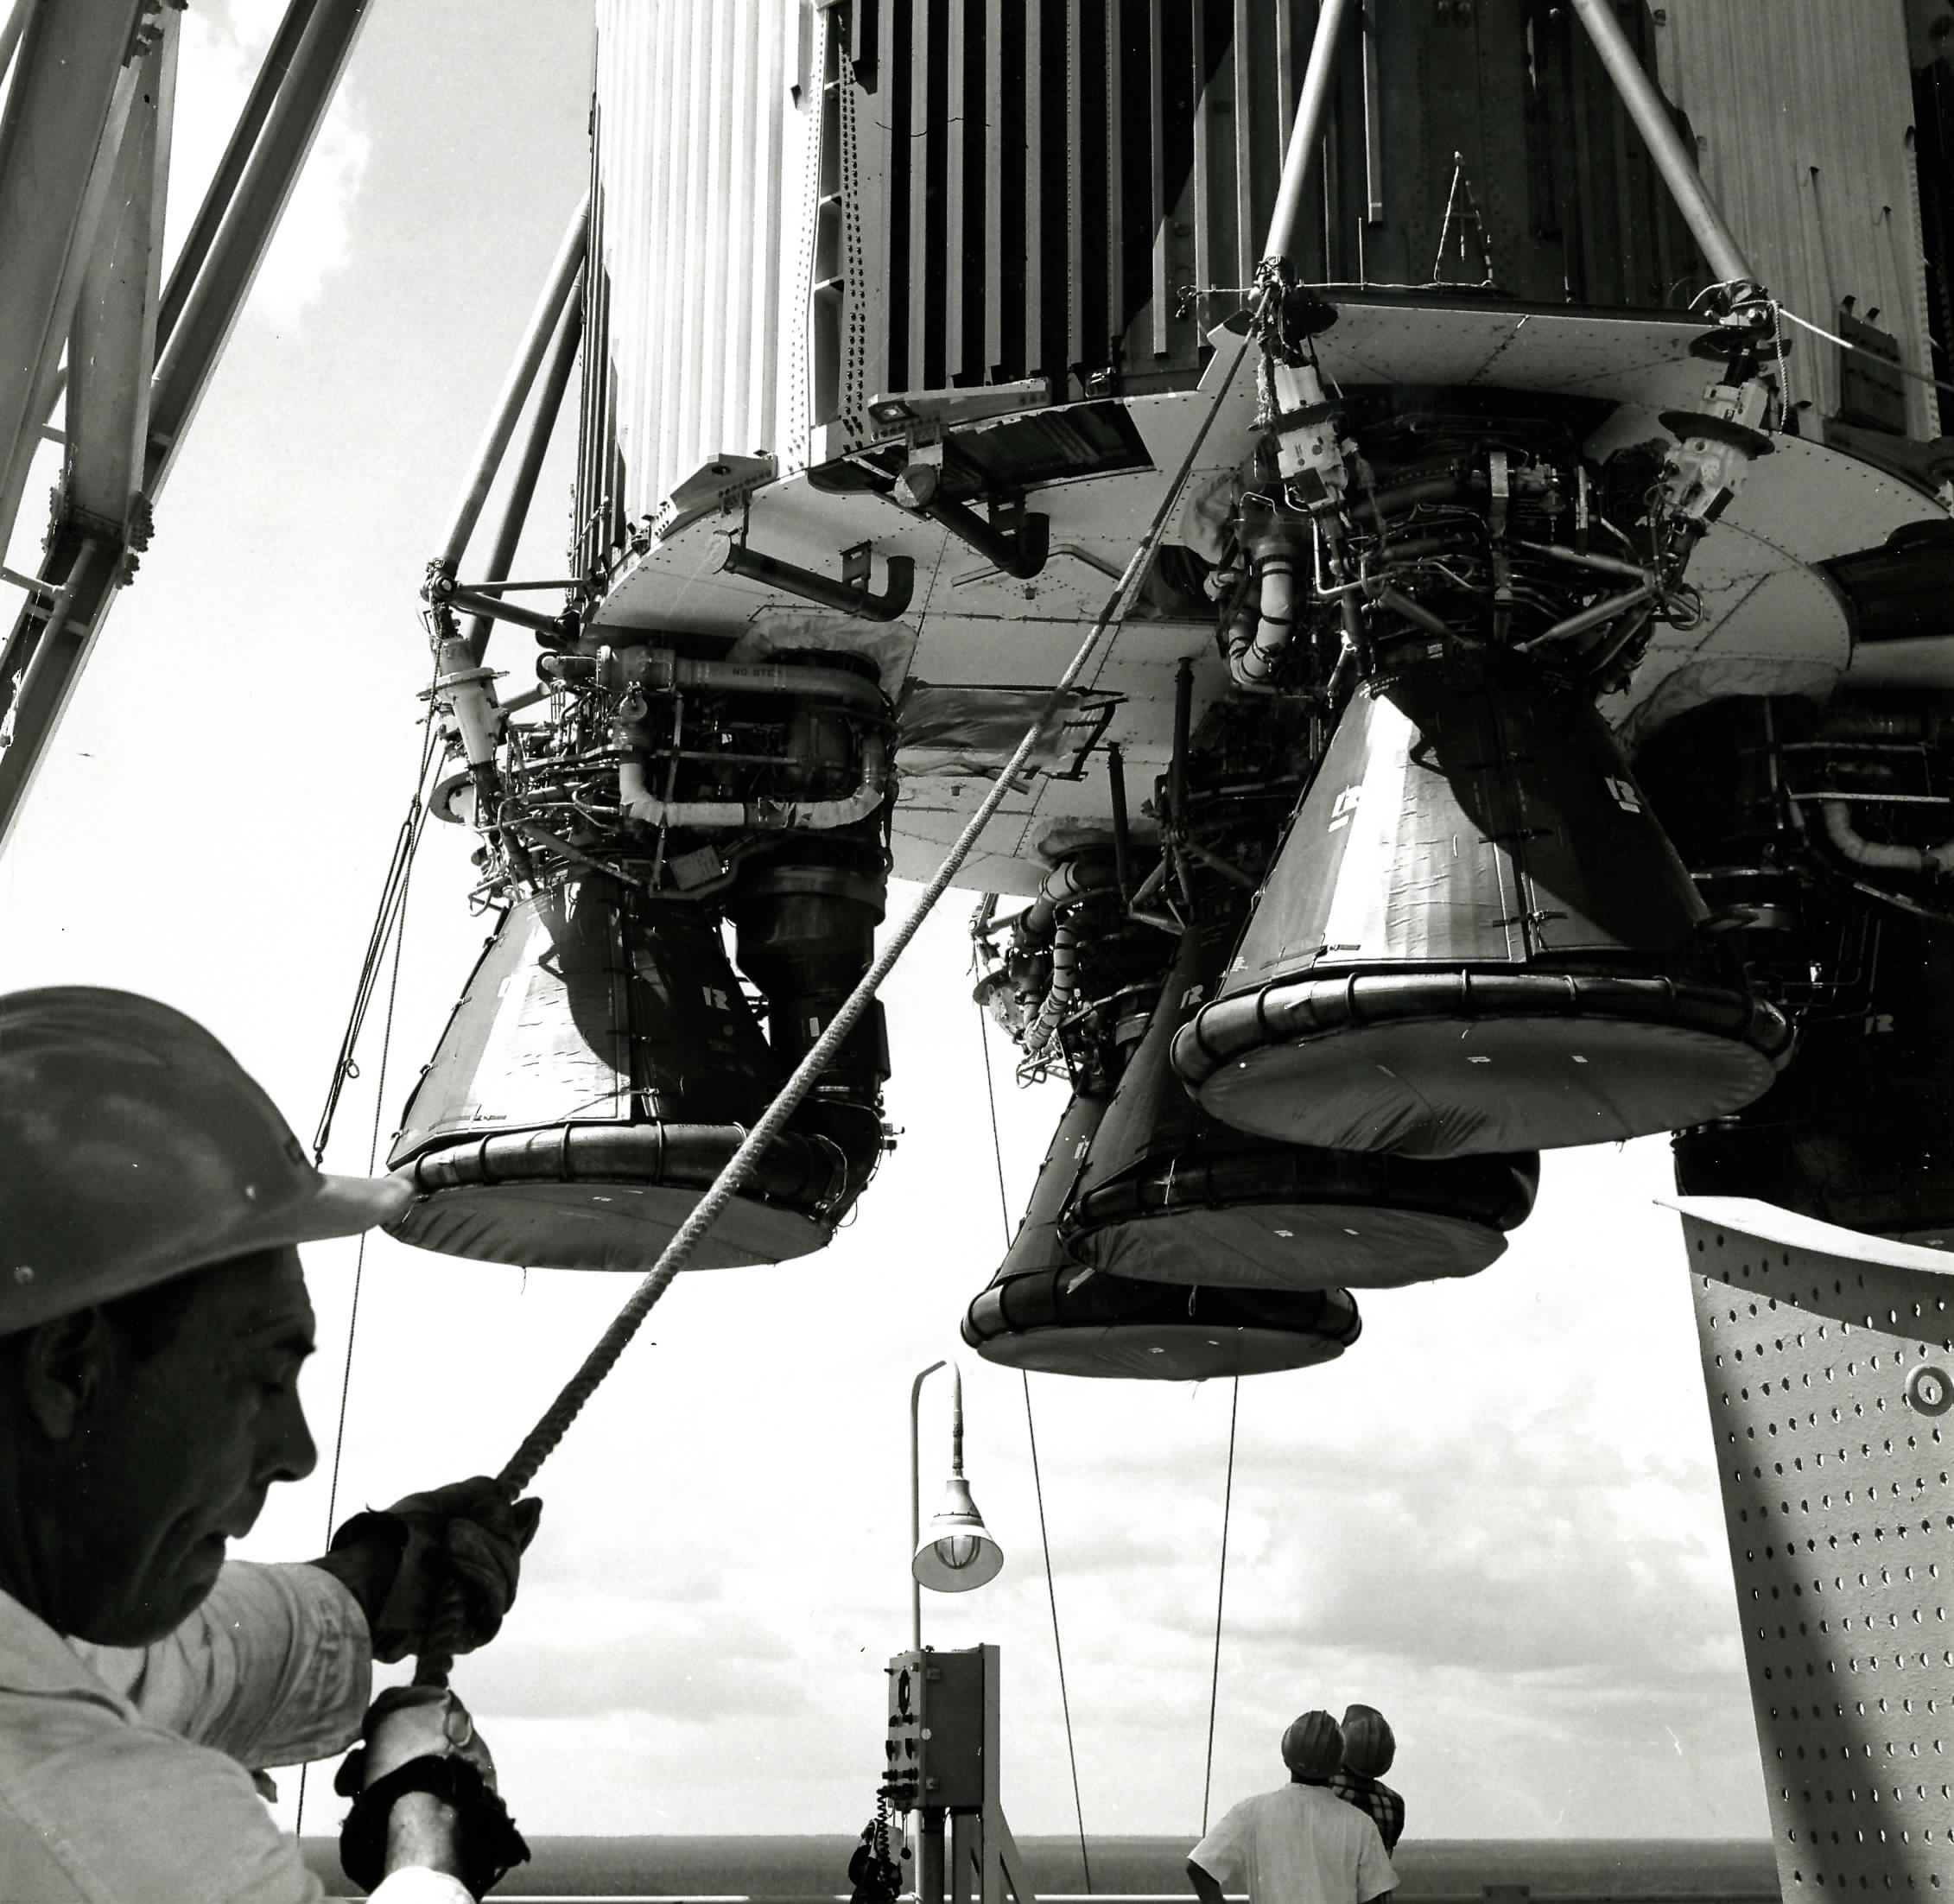 F-1 on Test Stand in Mississippi – A workman holds the line on the giant S-IC first stage of the Saturn V space vehicle as it is placed into the test stand at NASA's Mississippi Test Facility – now called Stennis Space Center. The big first stage has five F-1 engines, manufactured by Aerojet Rocketdyne that were used to launch the Apollo 11 astronauts on their journey to the moon. Photo courtesy of NASA.